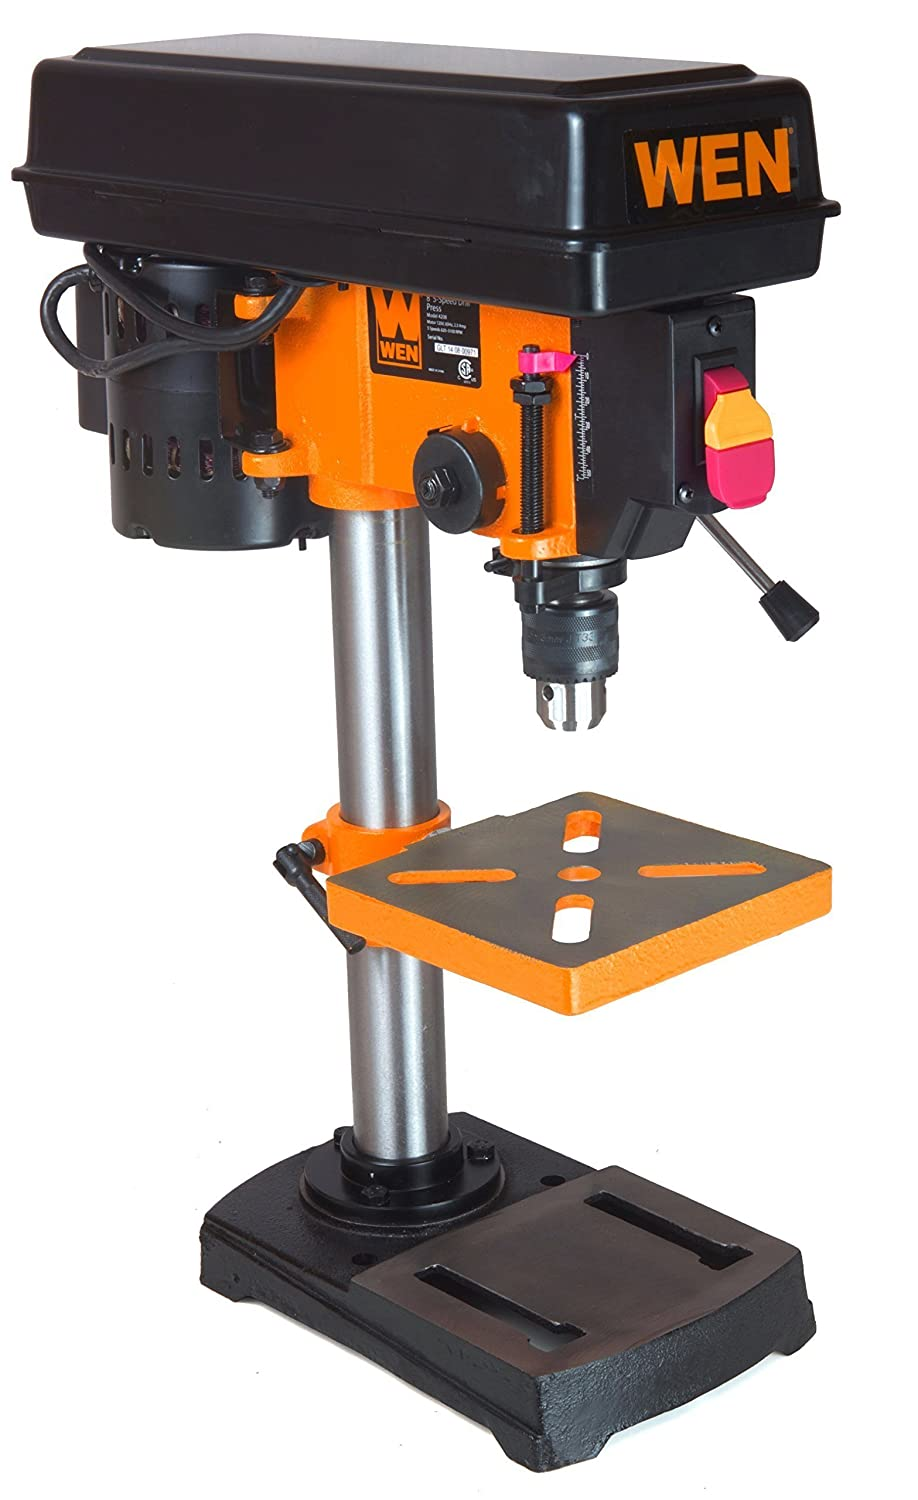 WEN 4208 Speed Drill Press Black Friday Deals 2020